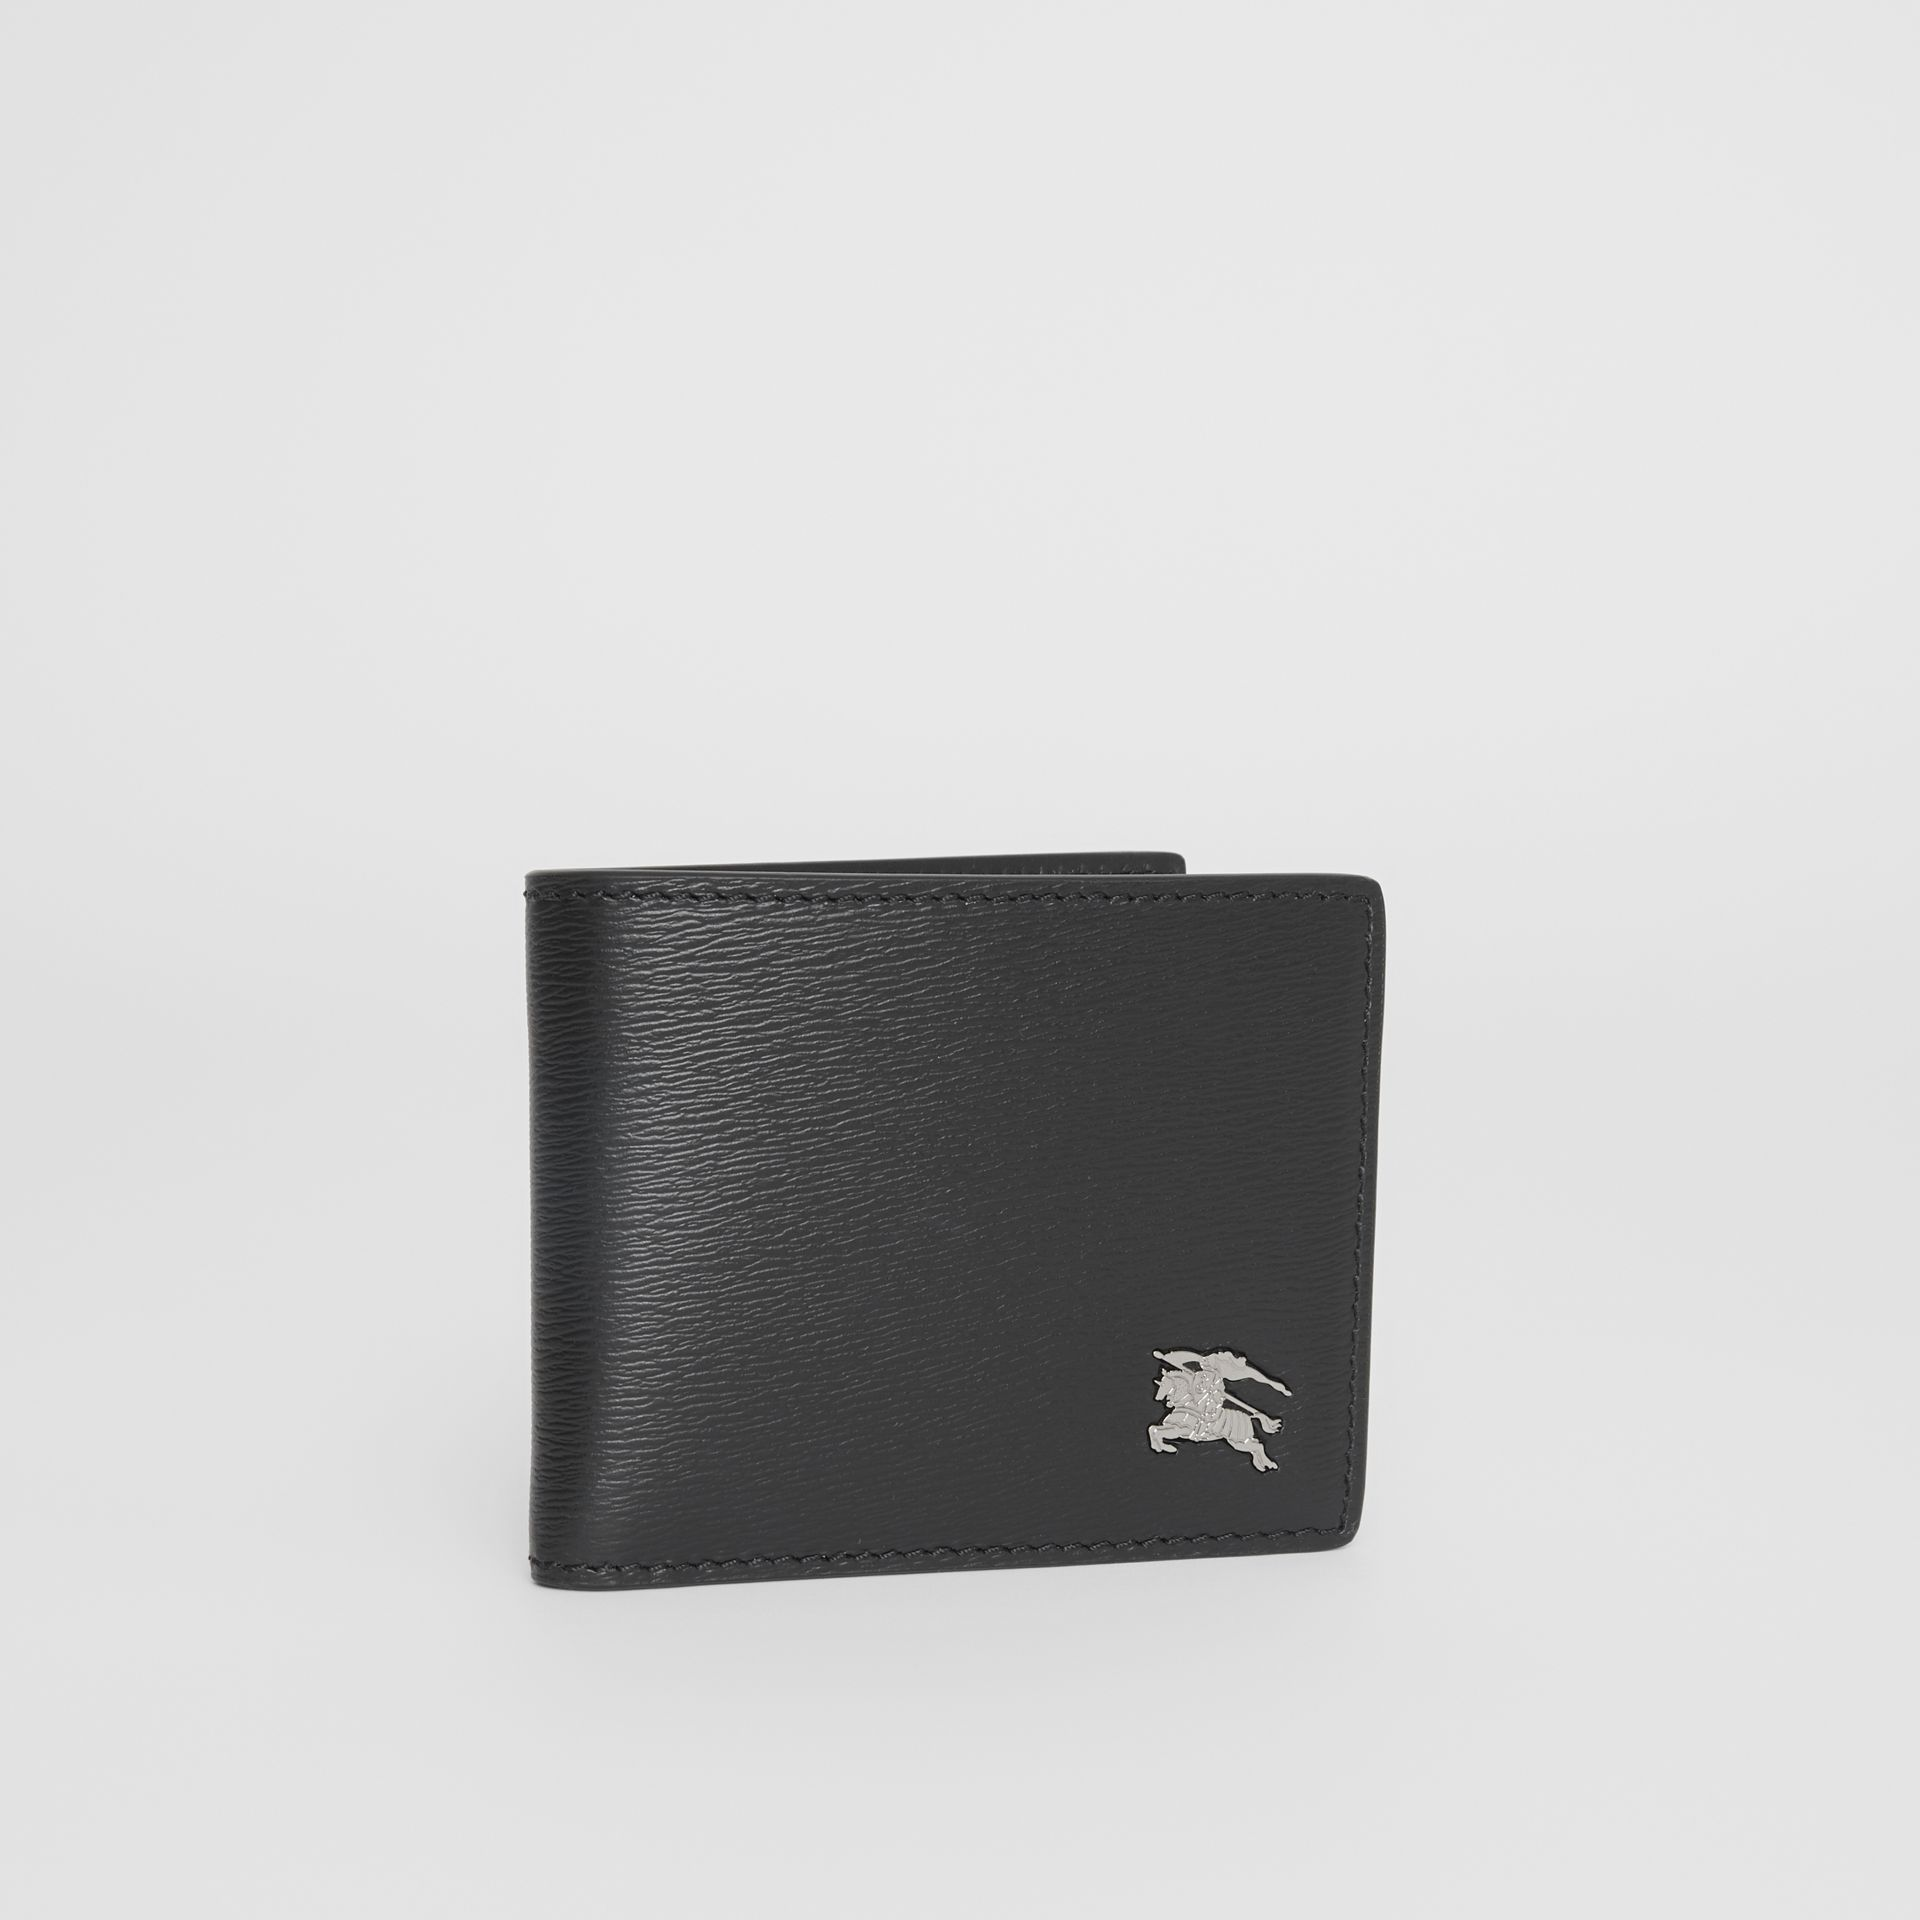 London Leather Bifold Wallet in Black - Men | Burberry - gallery image 3